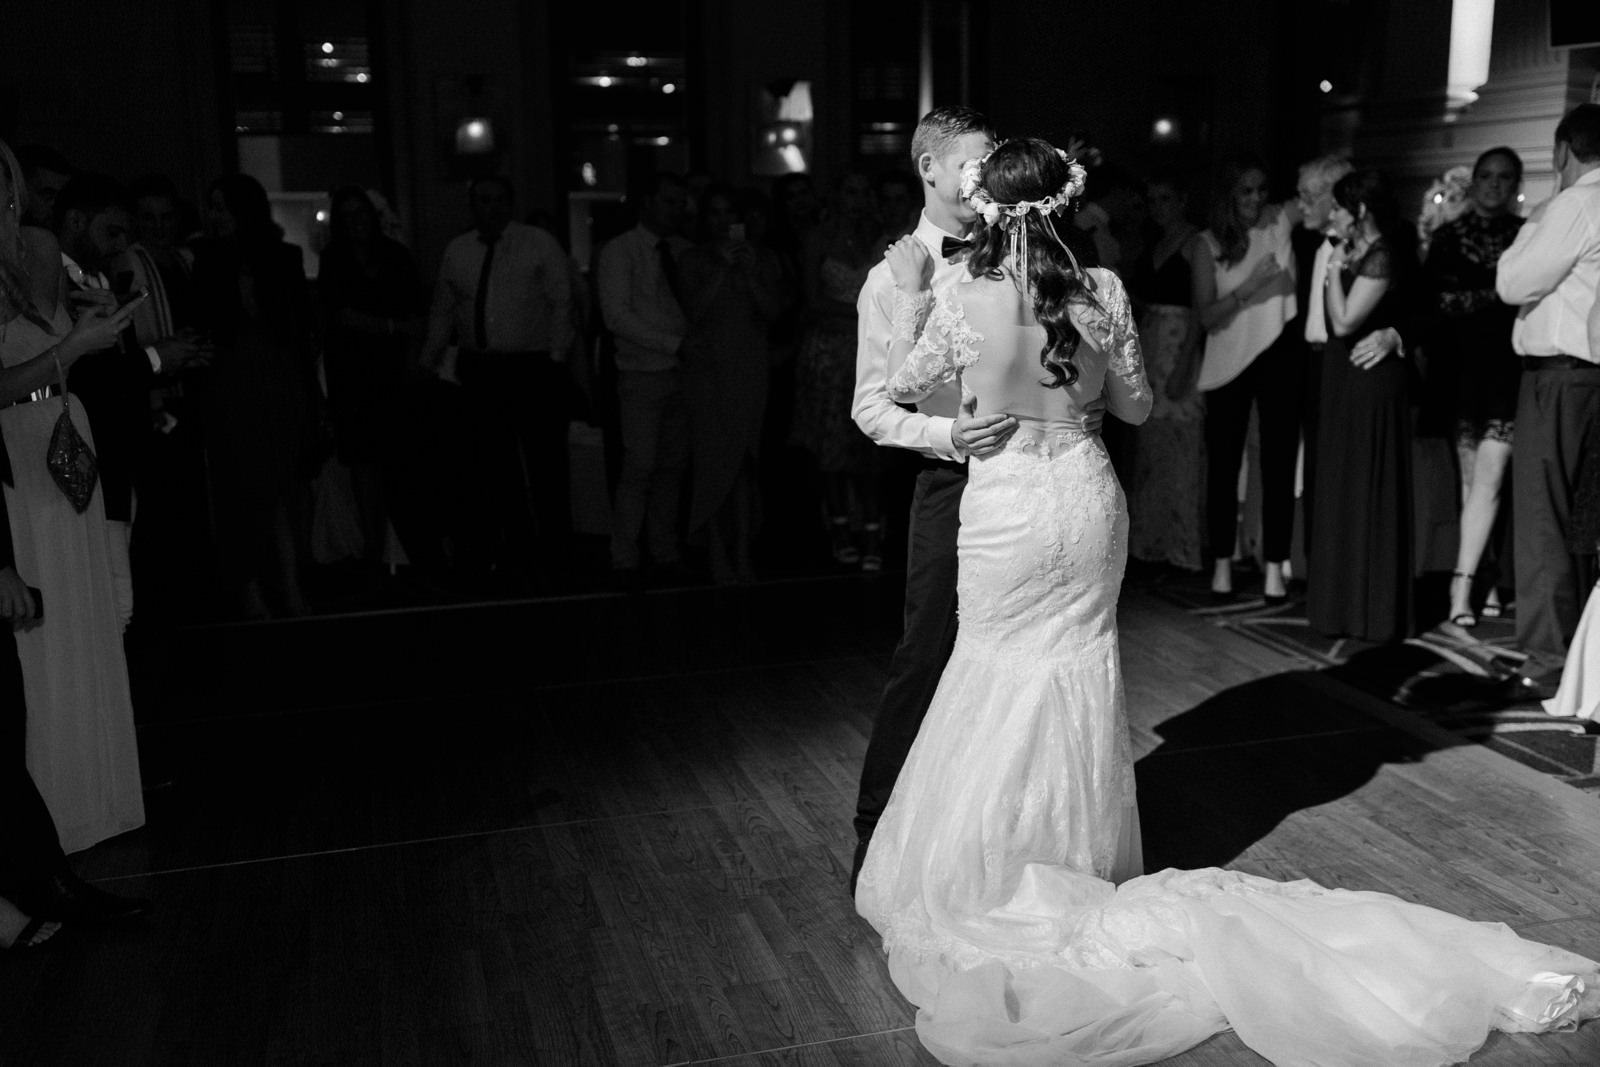 Customs House Brisbane wedding by Mario Colli Photography